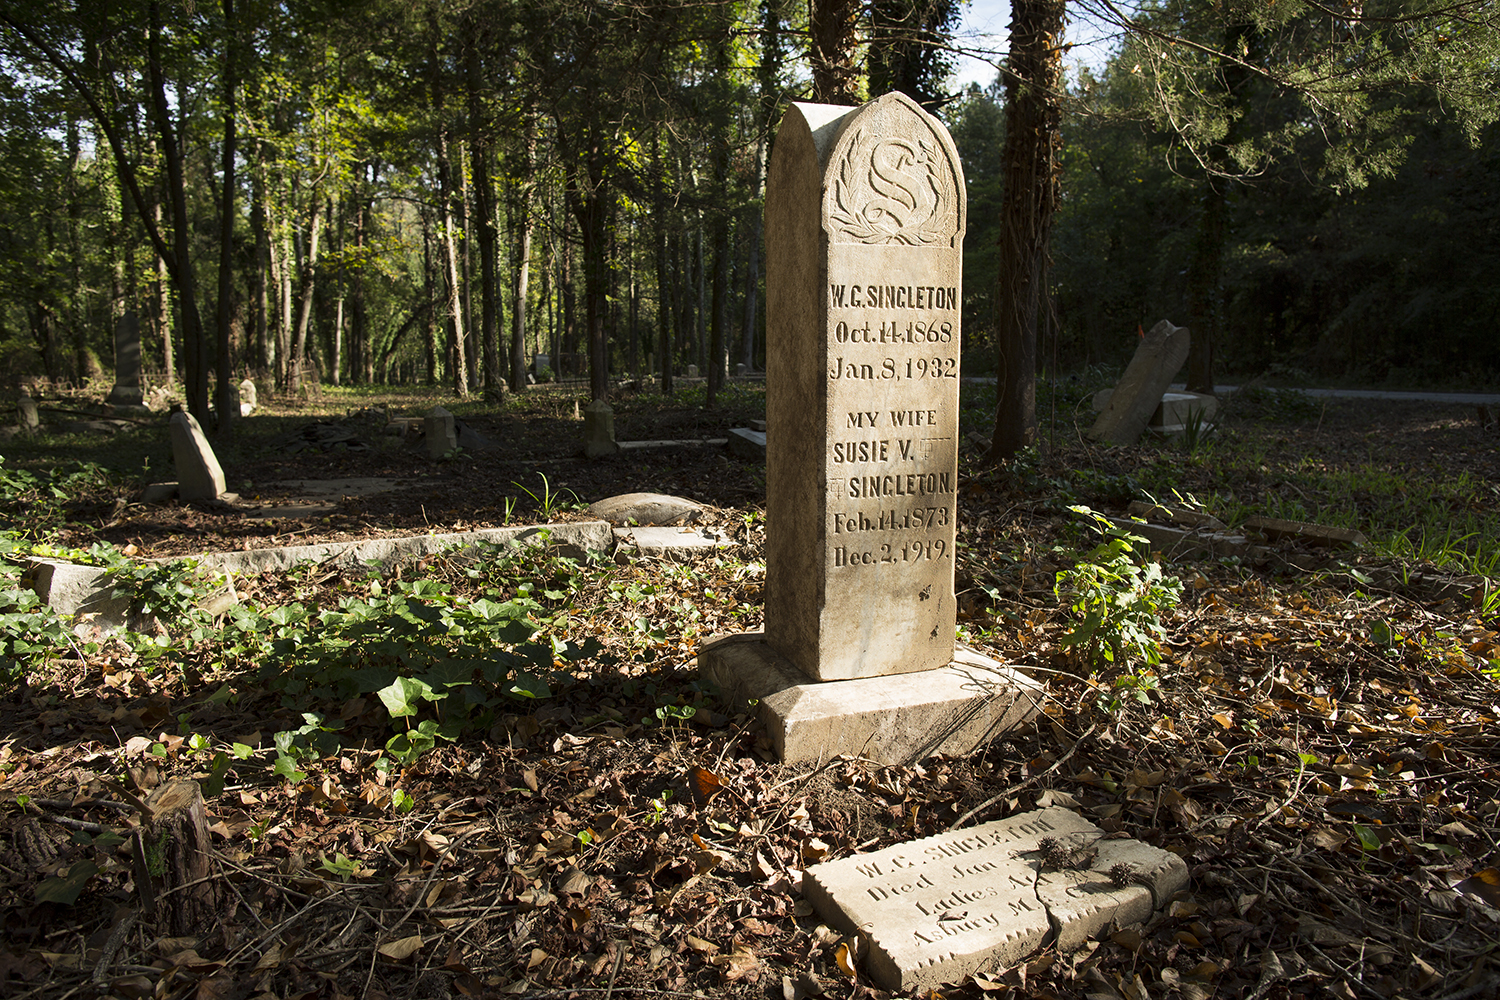 Singleton family memorial. East End Cemetery, Henrico County, Virginia, October 2015. Photo: ©BP